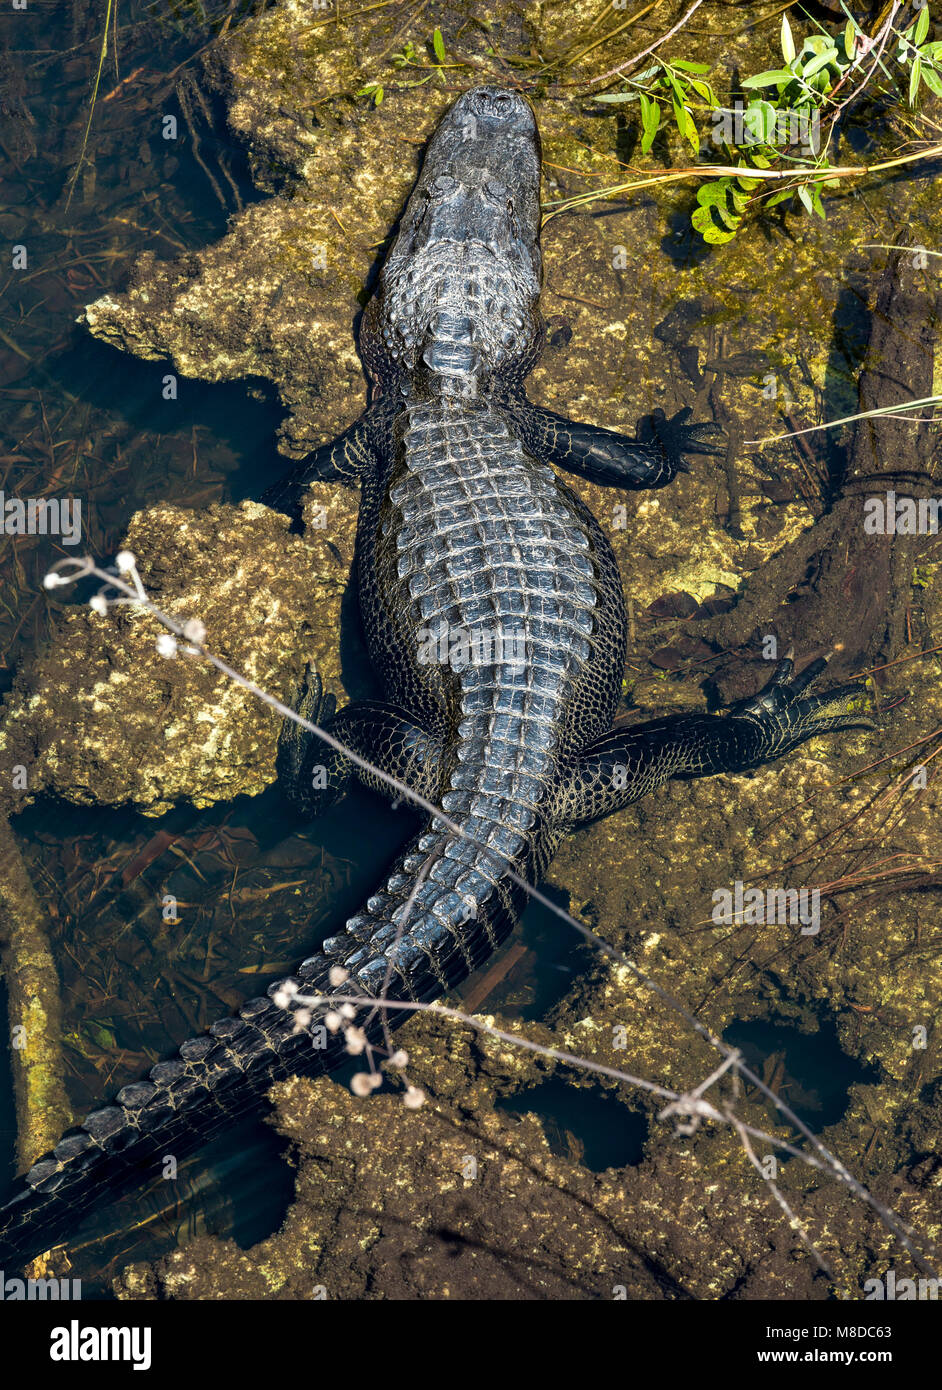 Aligator basking at sun at Pa-hay-okee Overlook, Everglades National Park Stock Photo